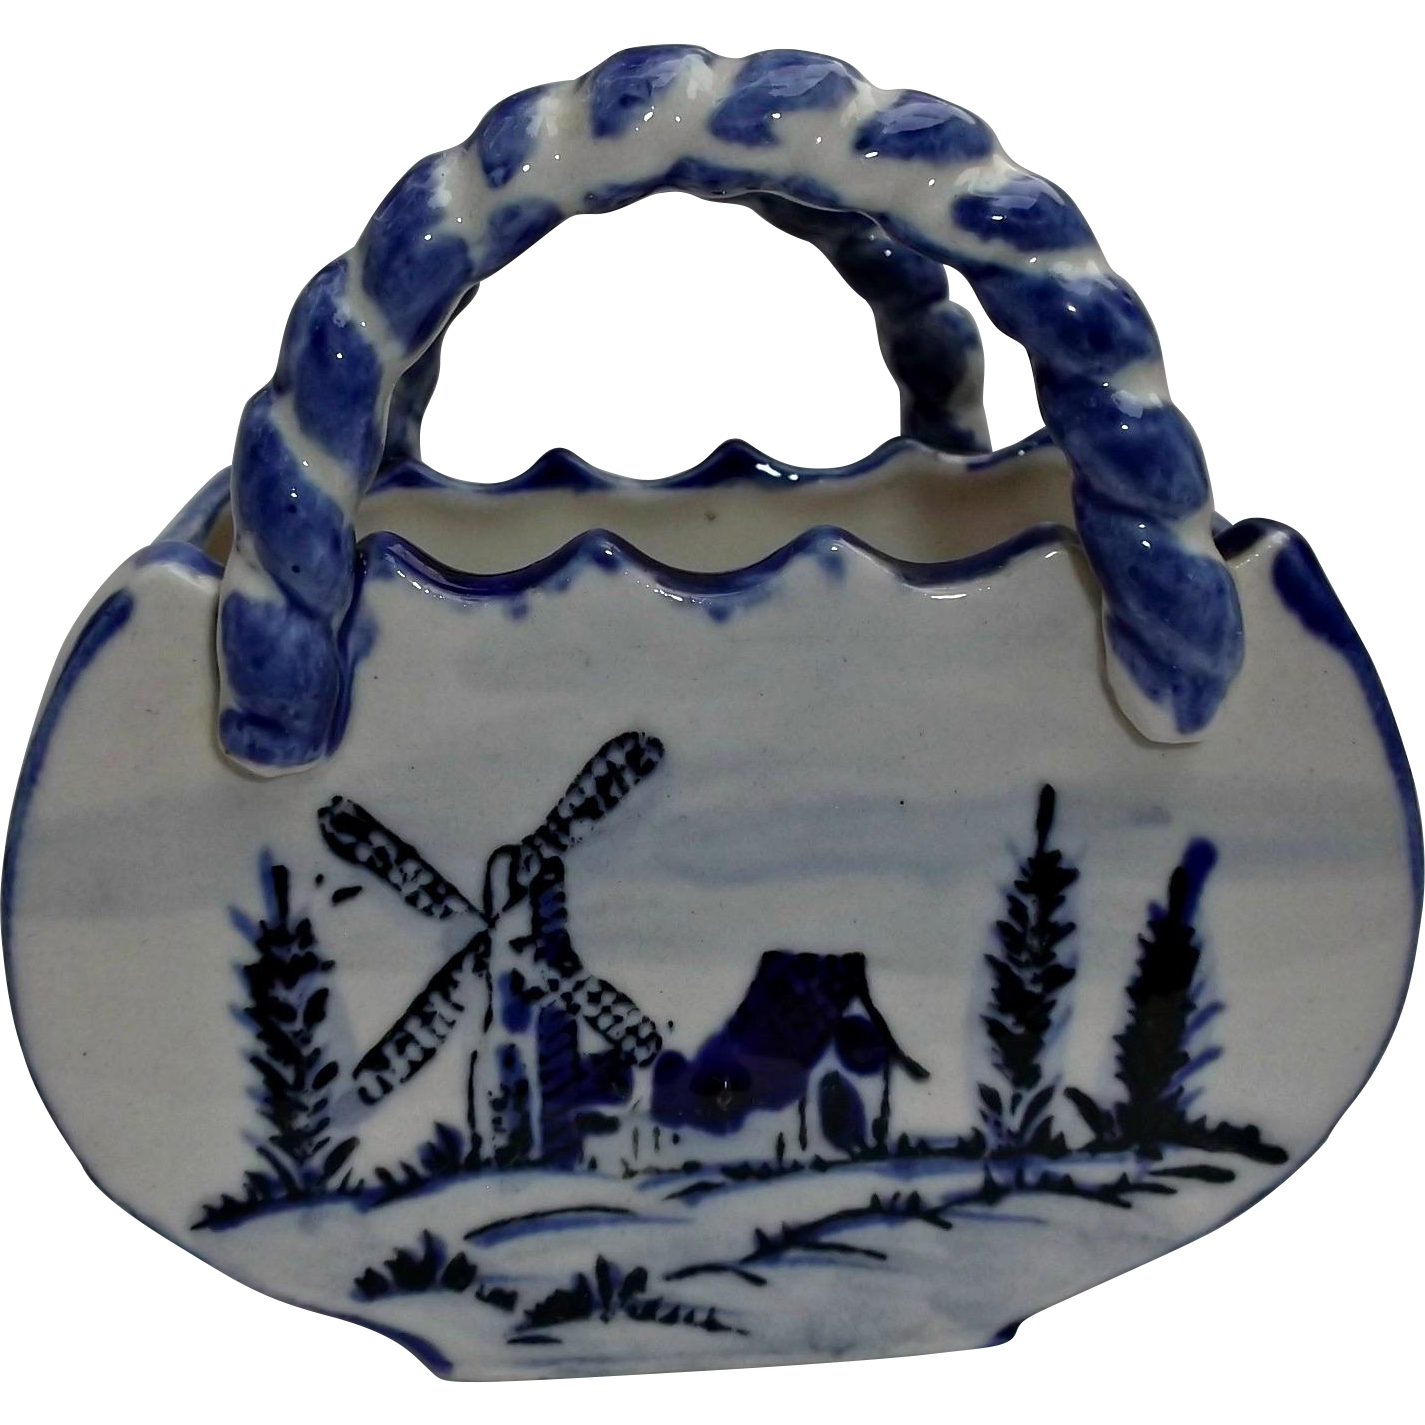 Delft Blue White Porcelain Basket Vintage Planter House Windmill Trees